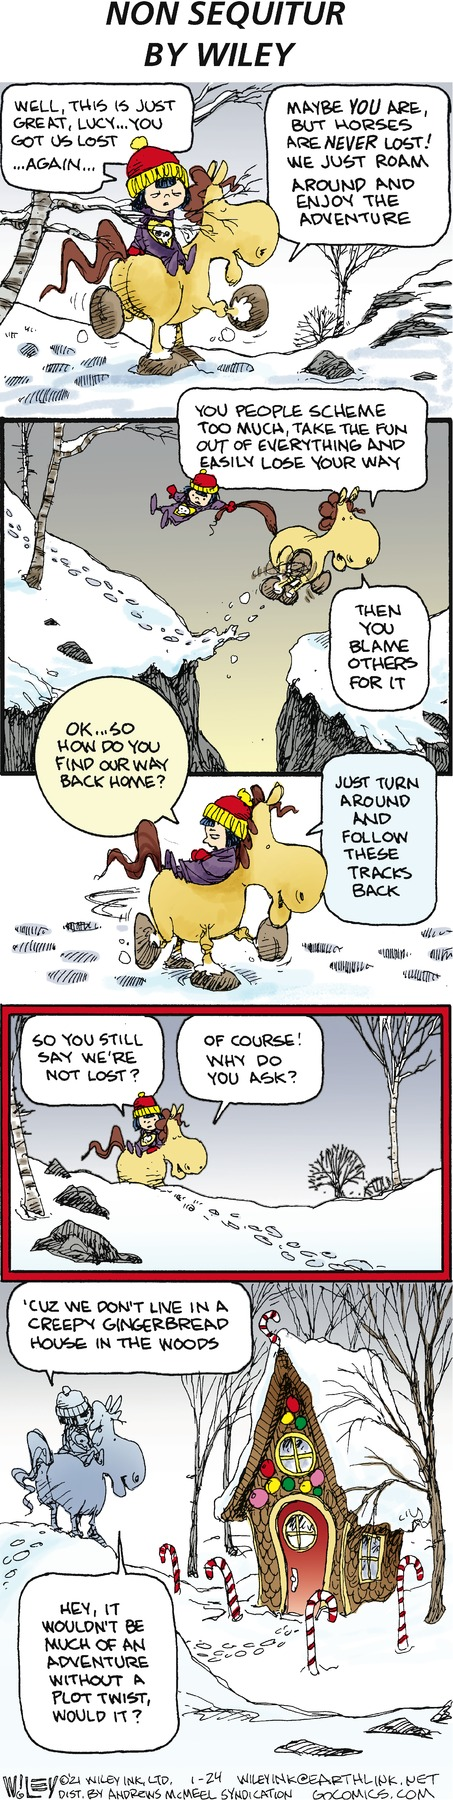 Non Sequitur Comic Strip for January 24, 2021